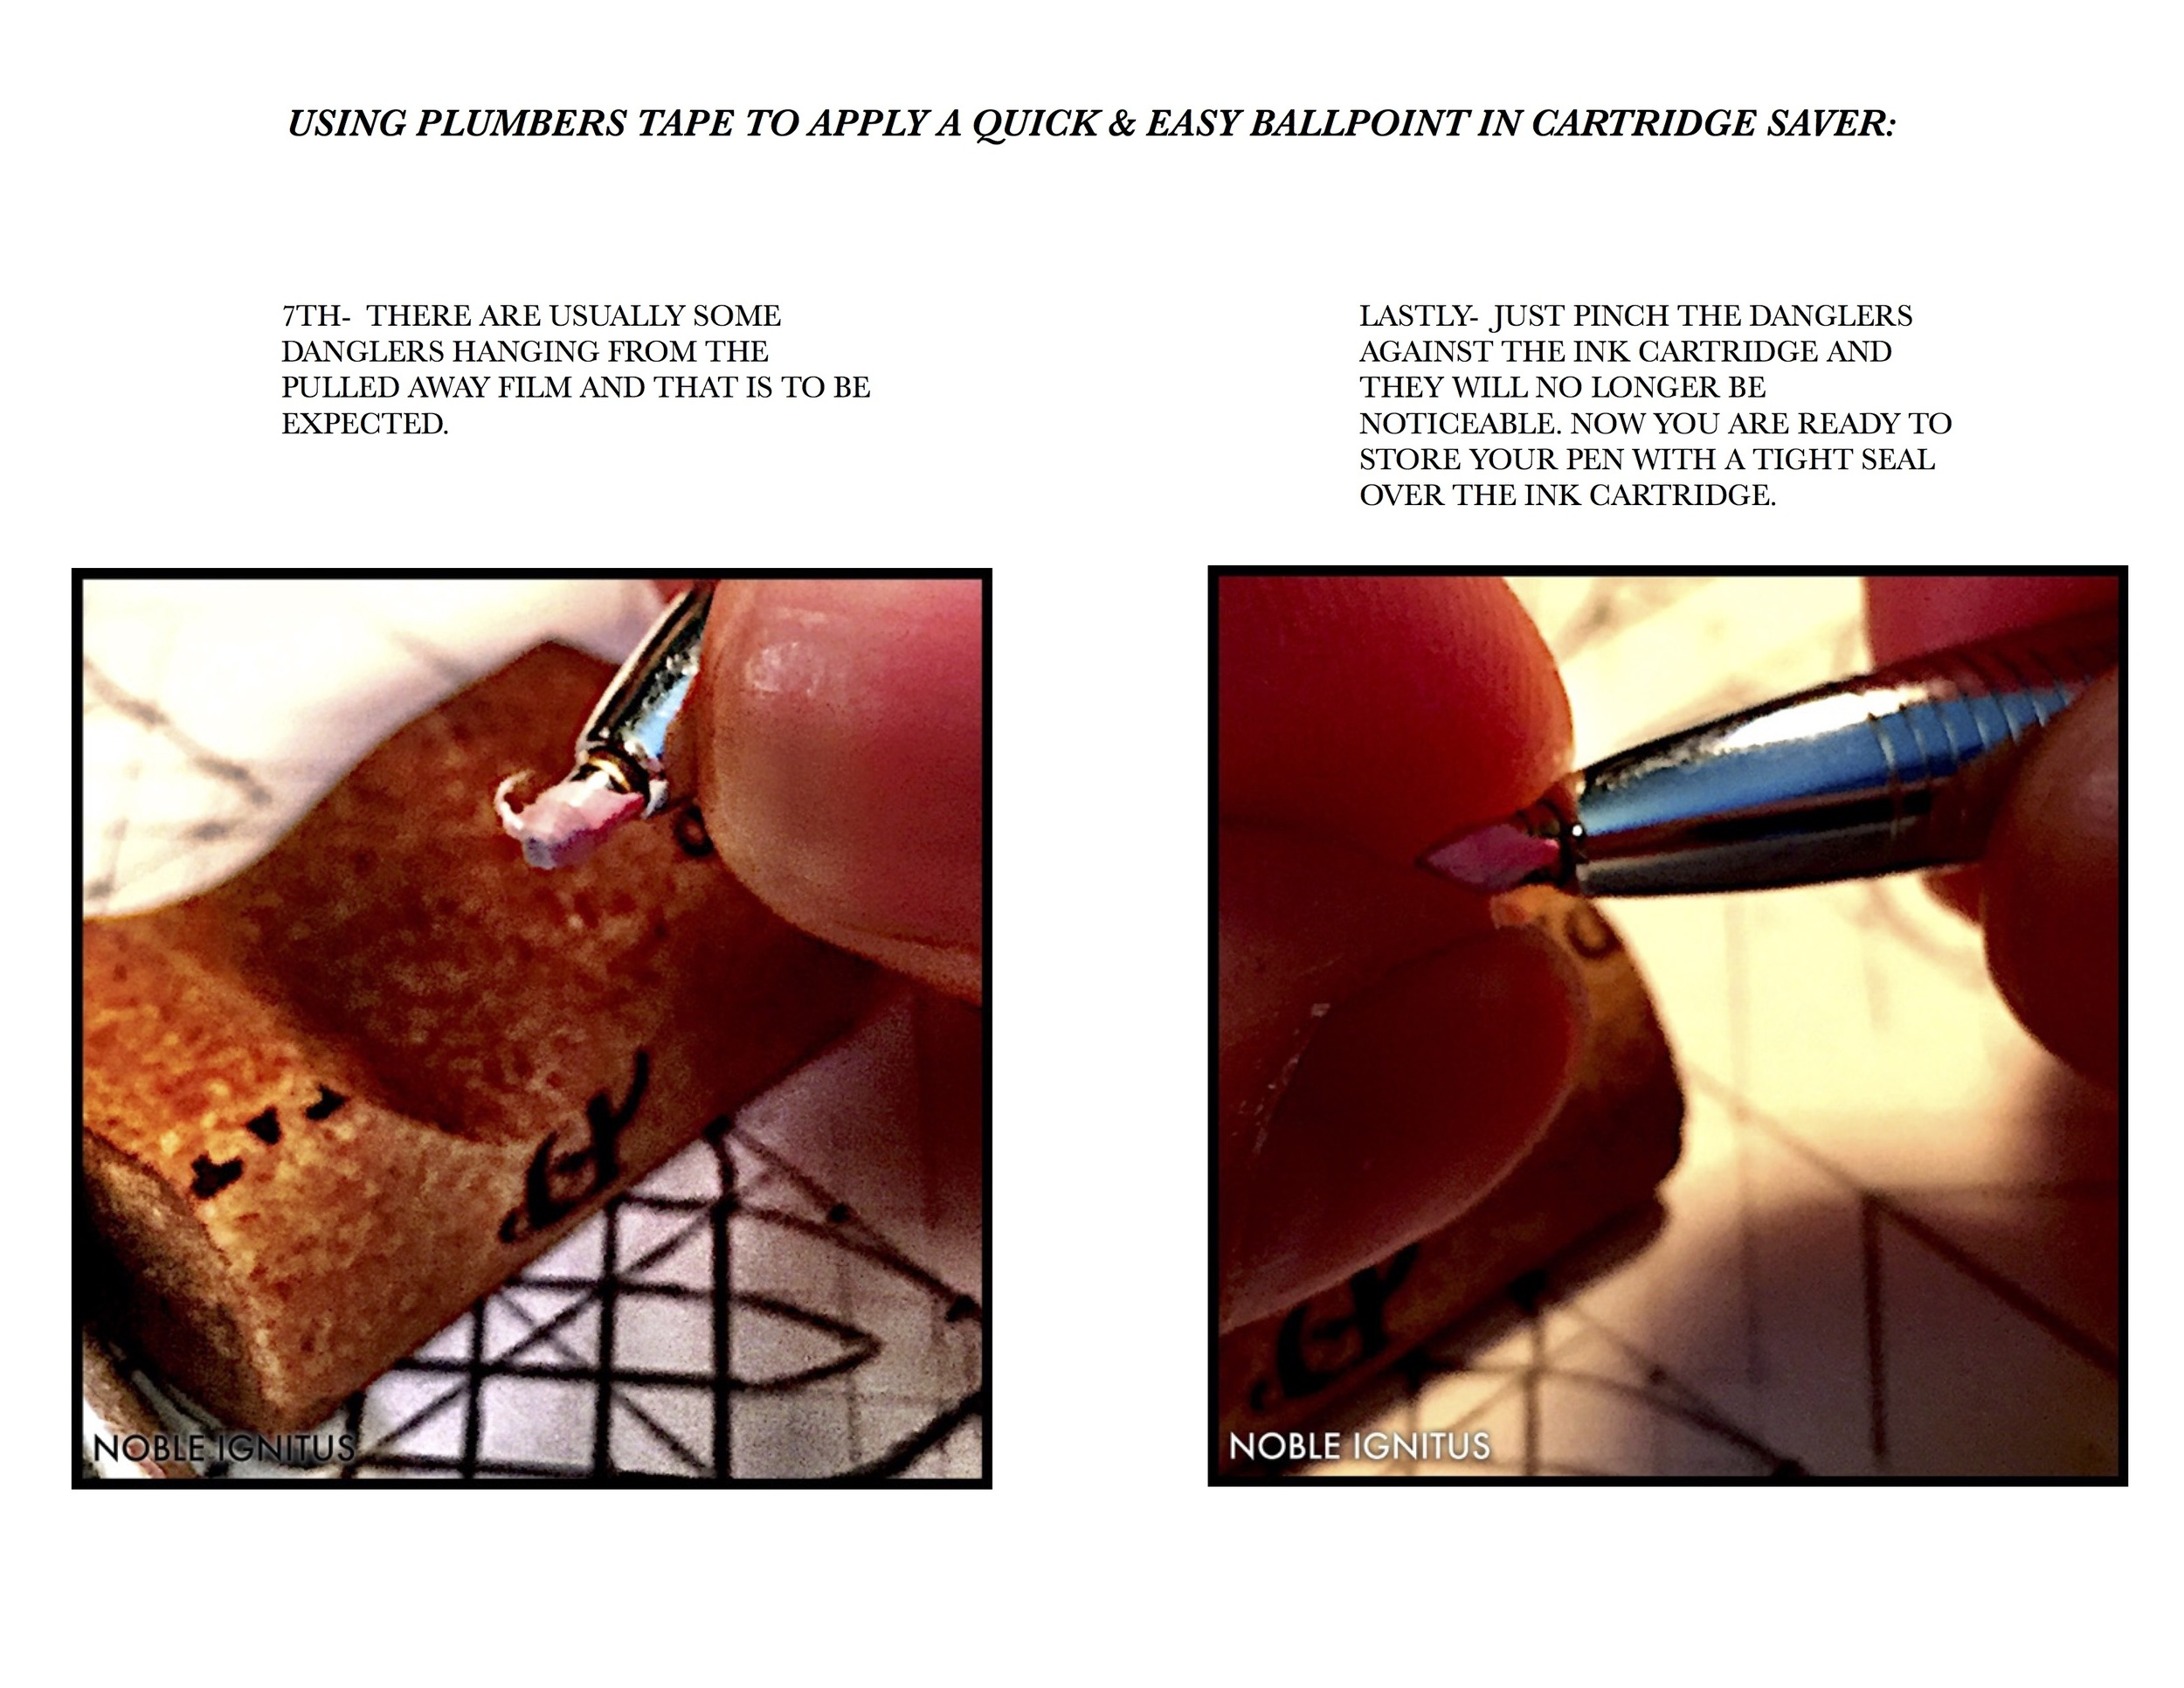 USING PLUMBERS TAPE TO APPLY A QUICK & EASY BALLPOINT IN CARTRIDGE SAVER PART 2 JPEG.jpg